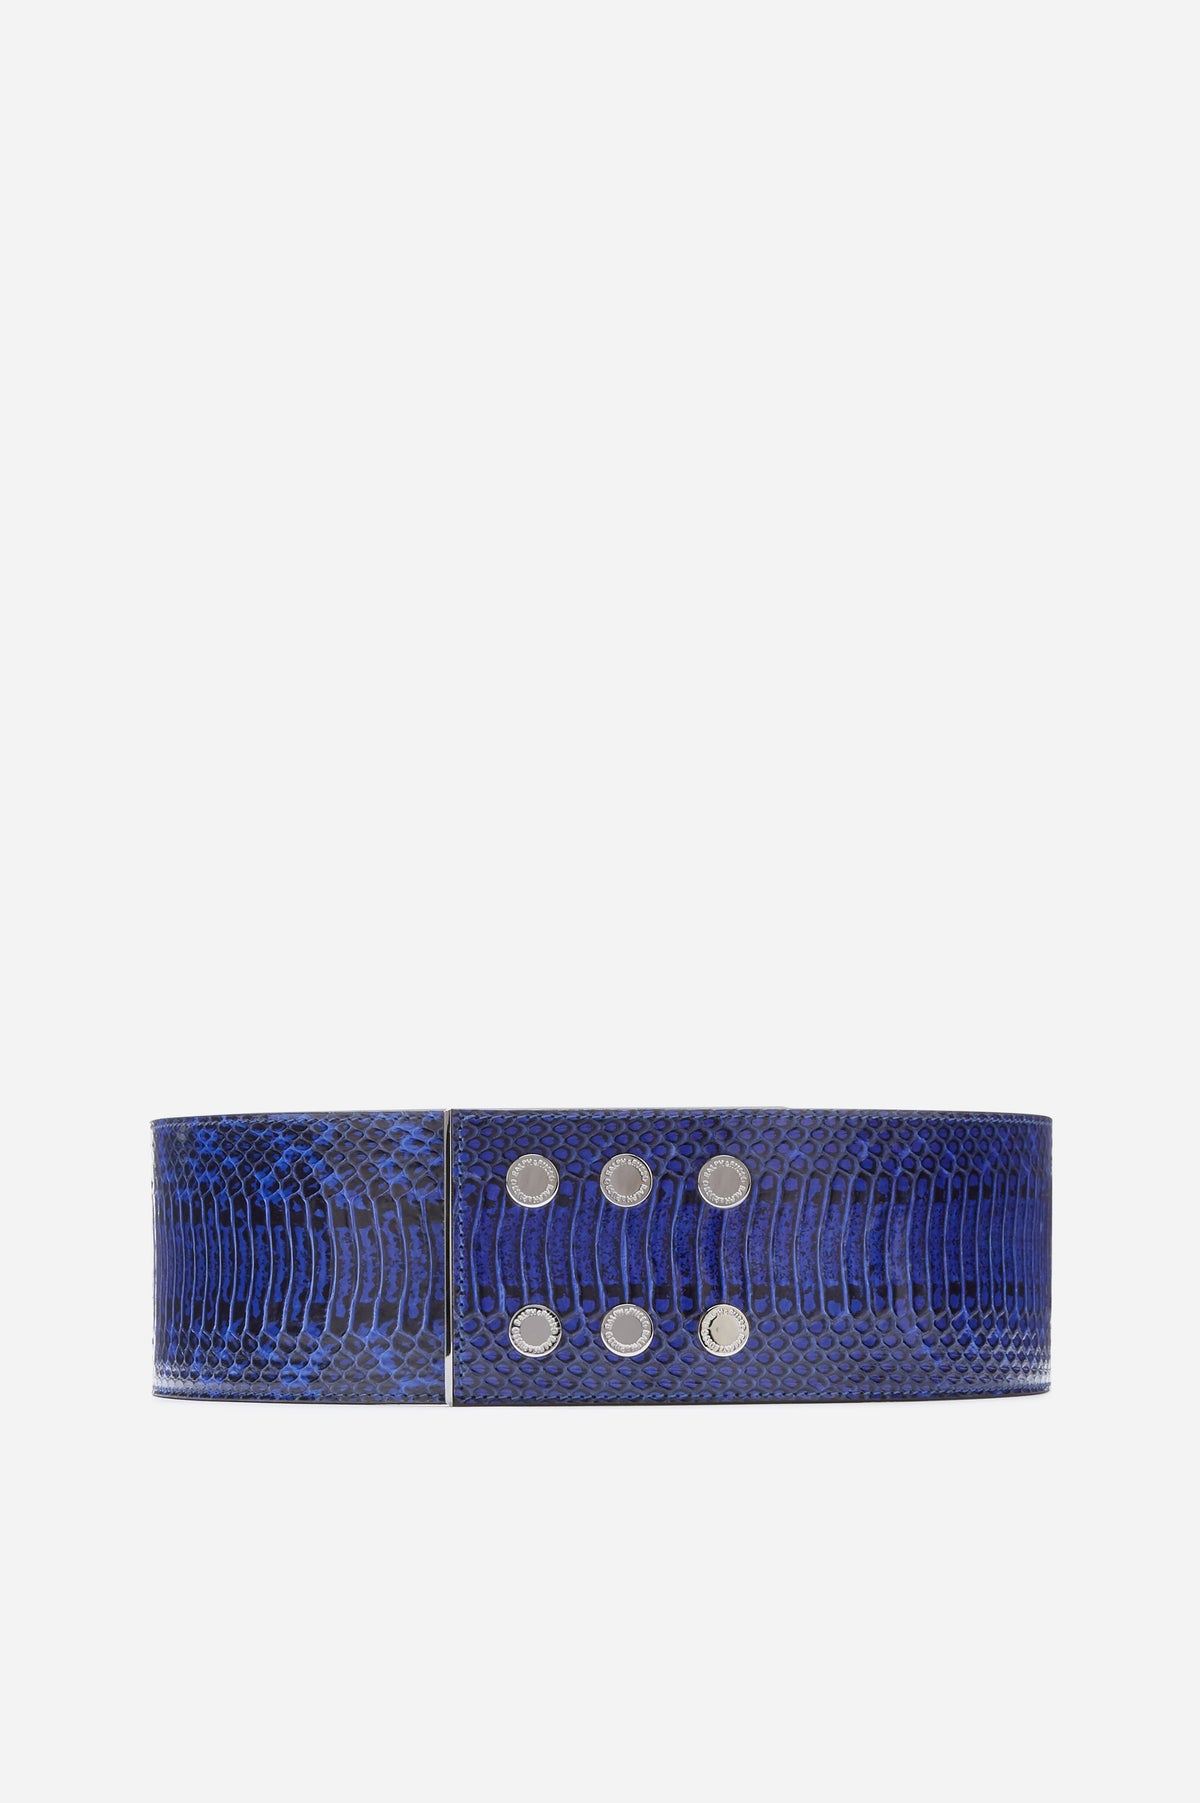 Blue and Black elaphe with gunmetal hardware